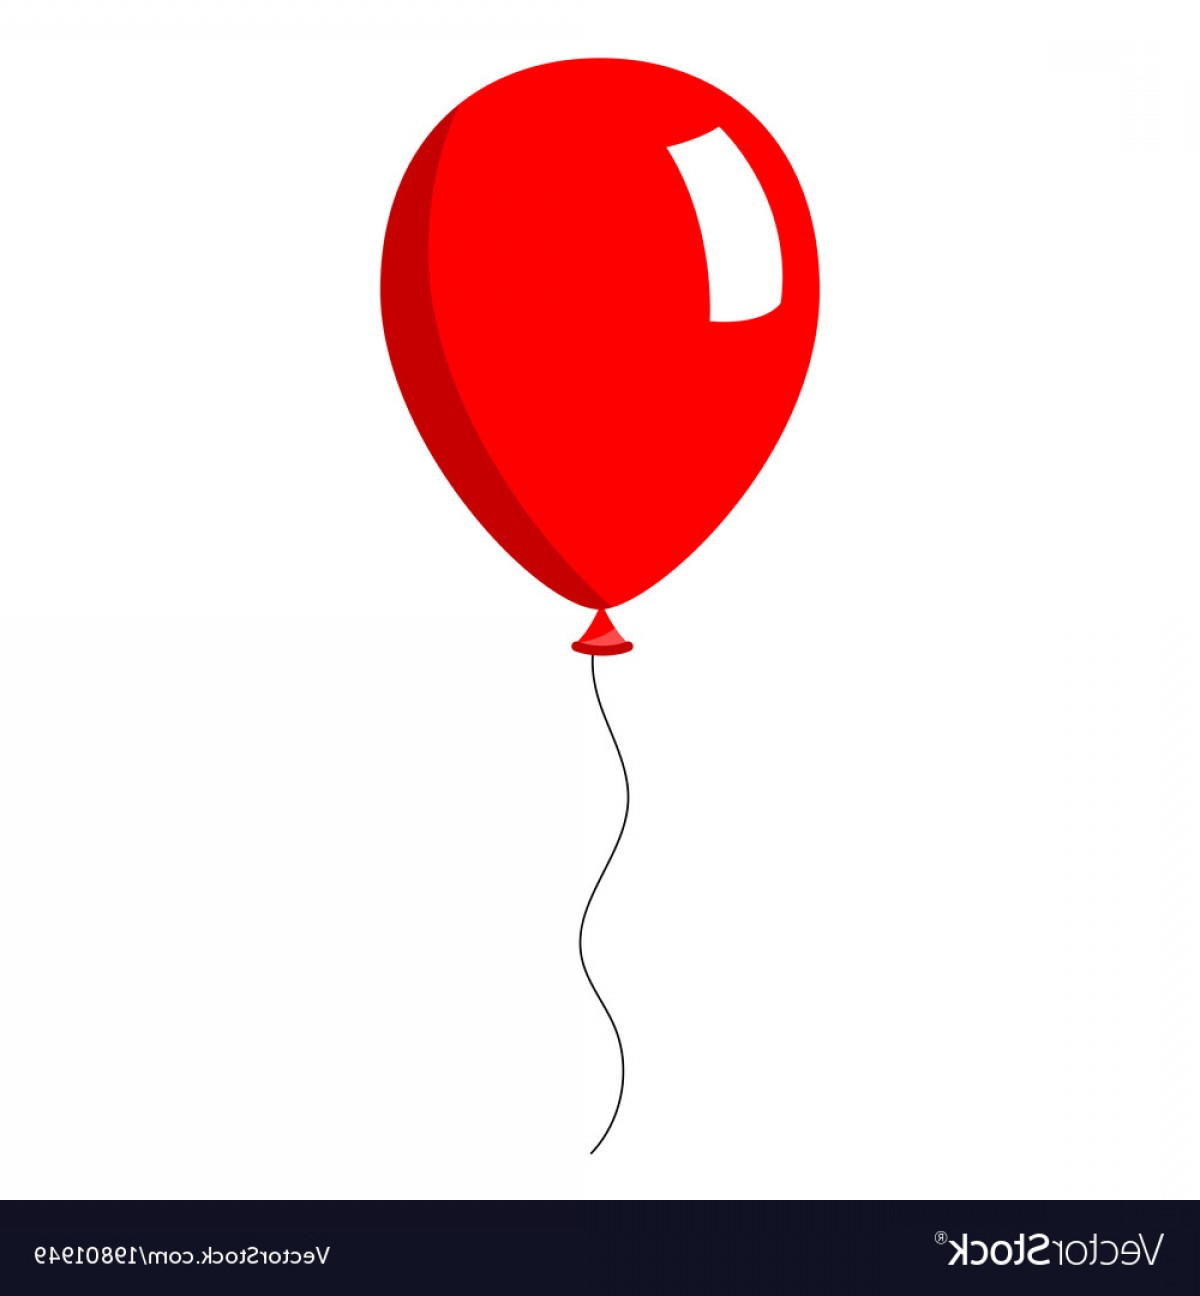 red balloon on white background vector createmepink 25th anniversary free vector 25th anniversary logo vector free download